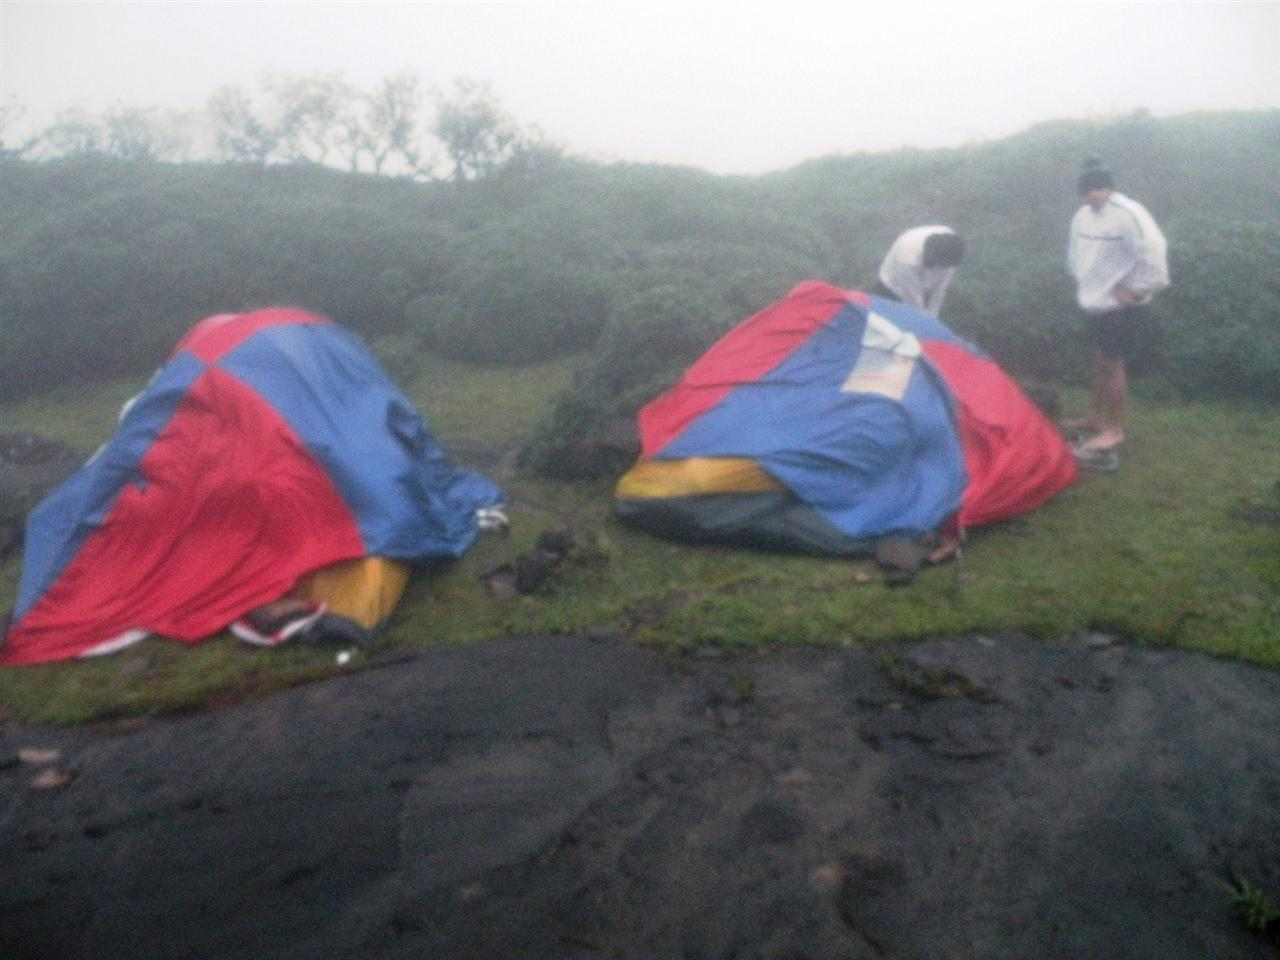 Survived tent n thus us. They faced the real real brunt of wind for over 12 hrs